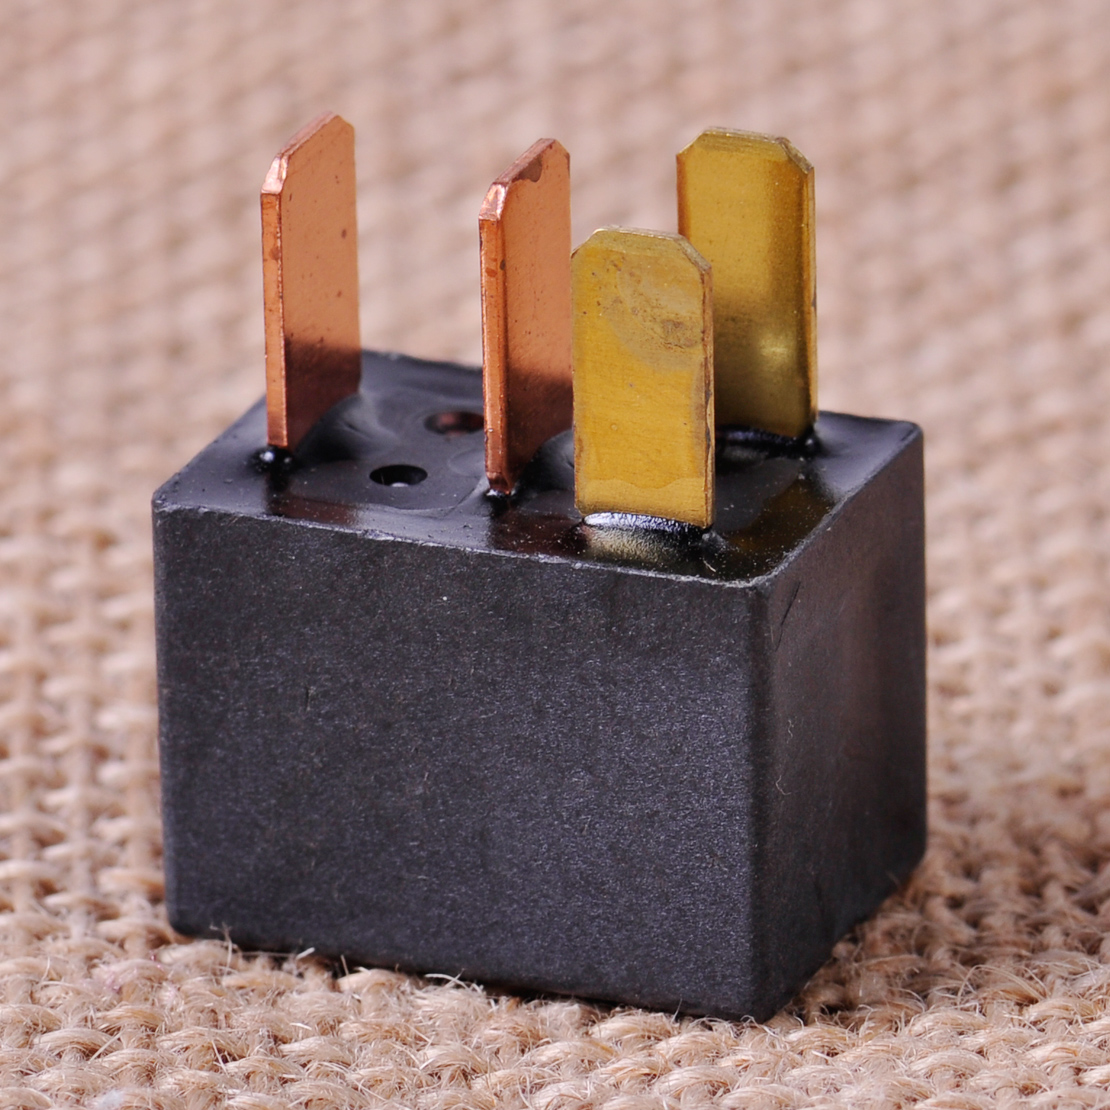 Popular Civic Fuse-Buy Cheap Civic Fuse Lots From China